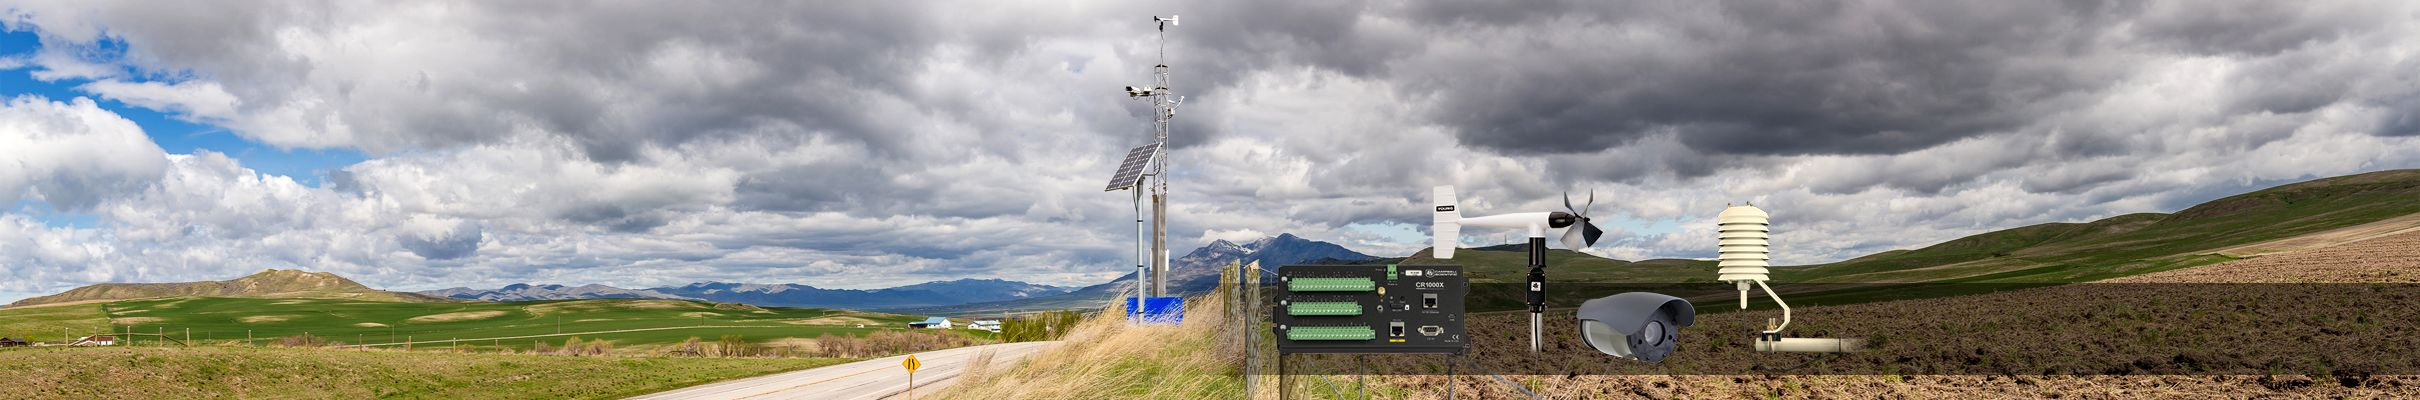 Weather High-performance weather measurement instrumentation that just works